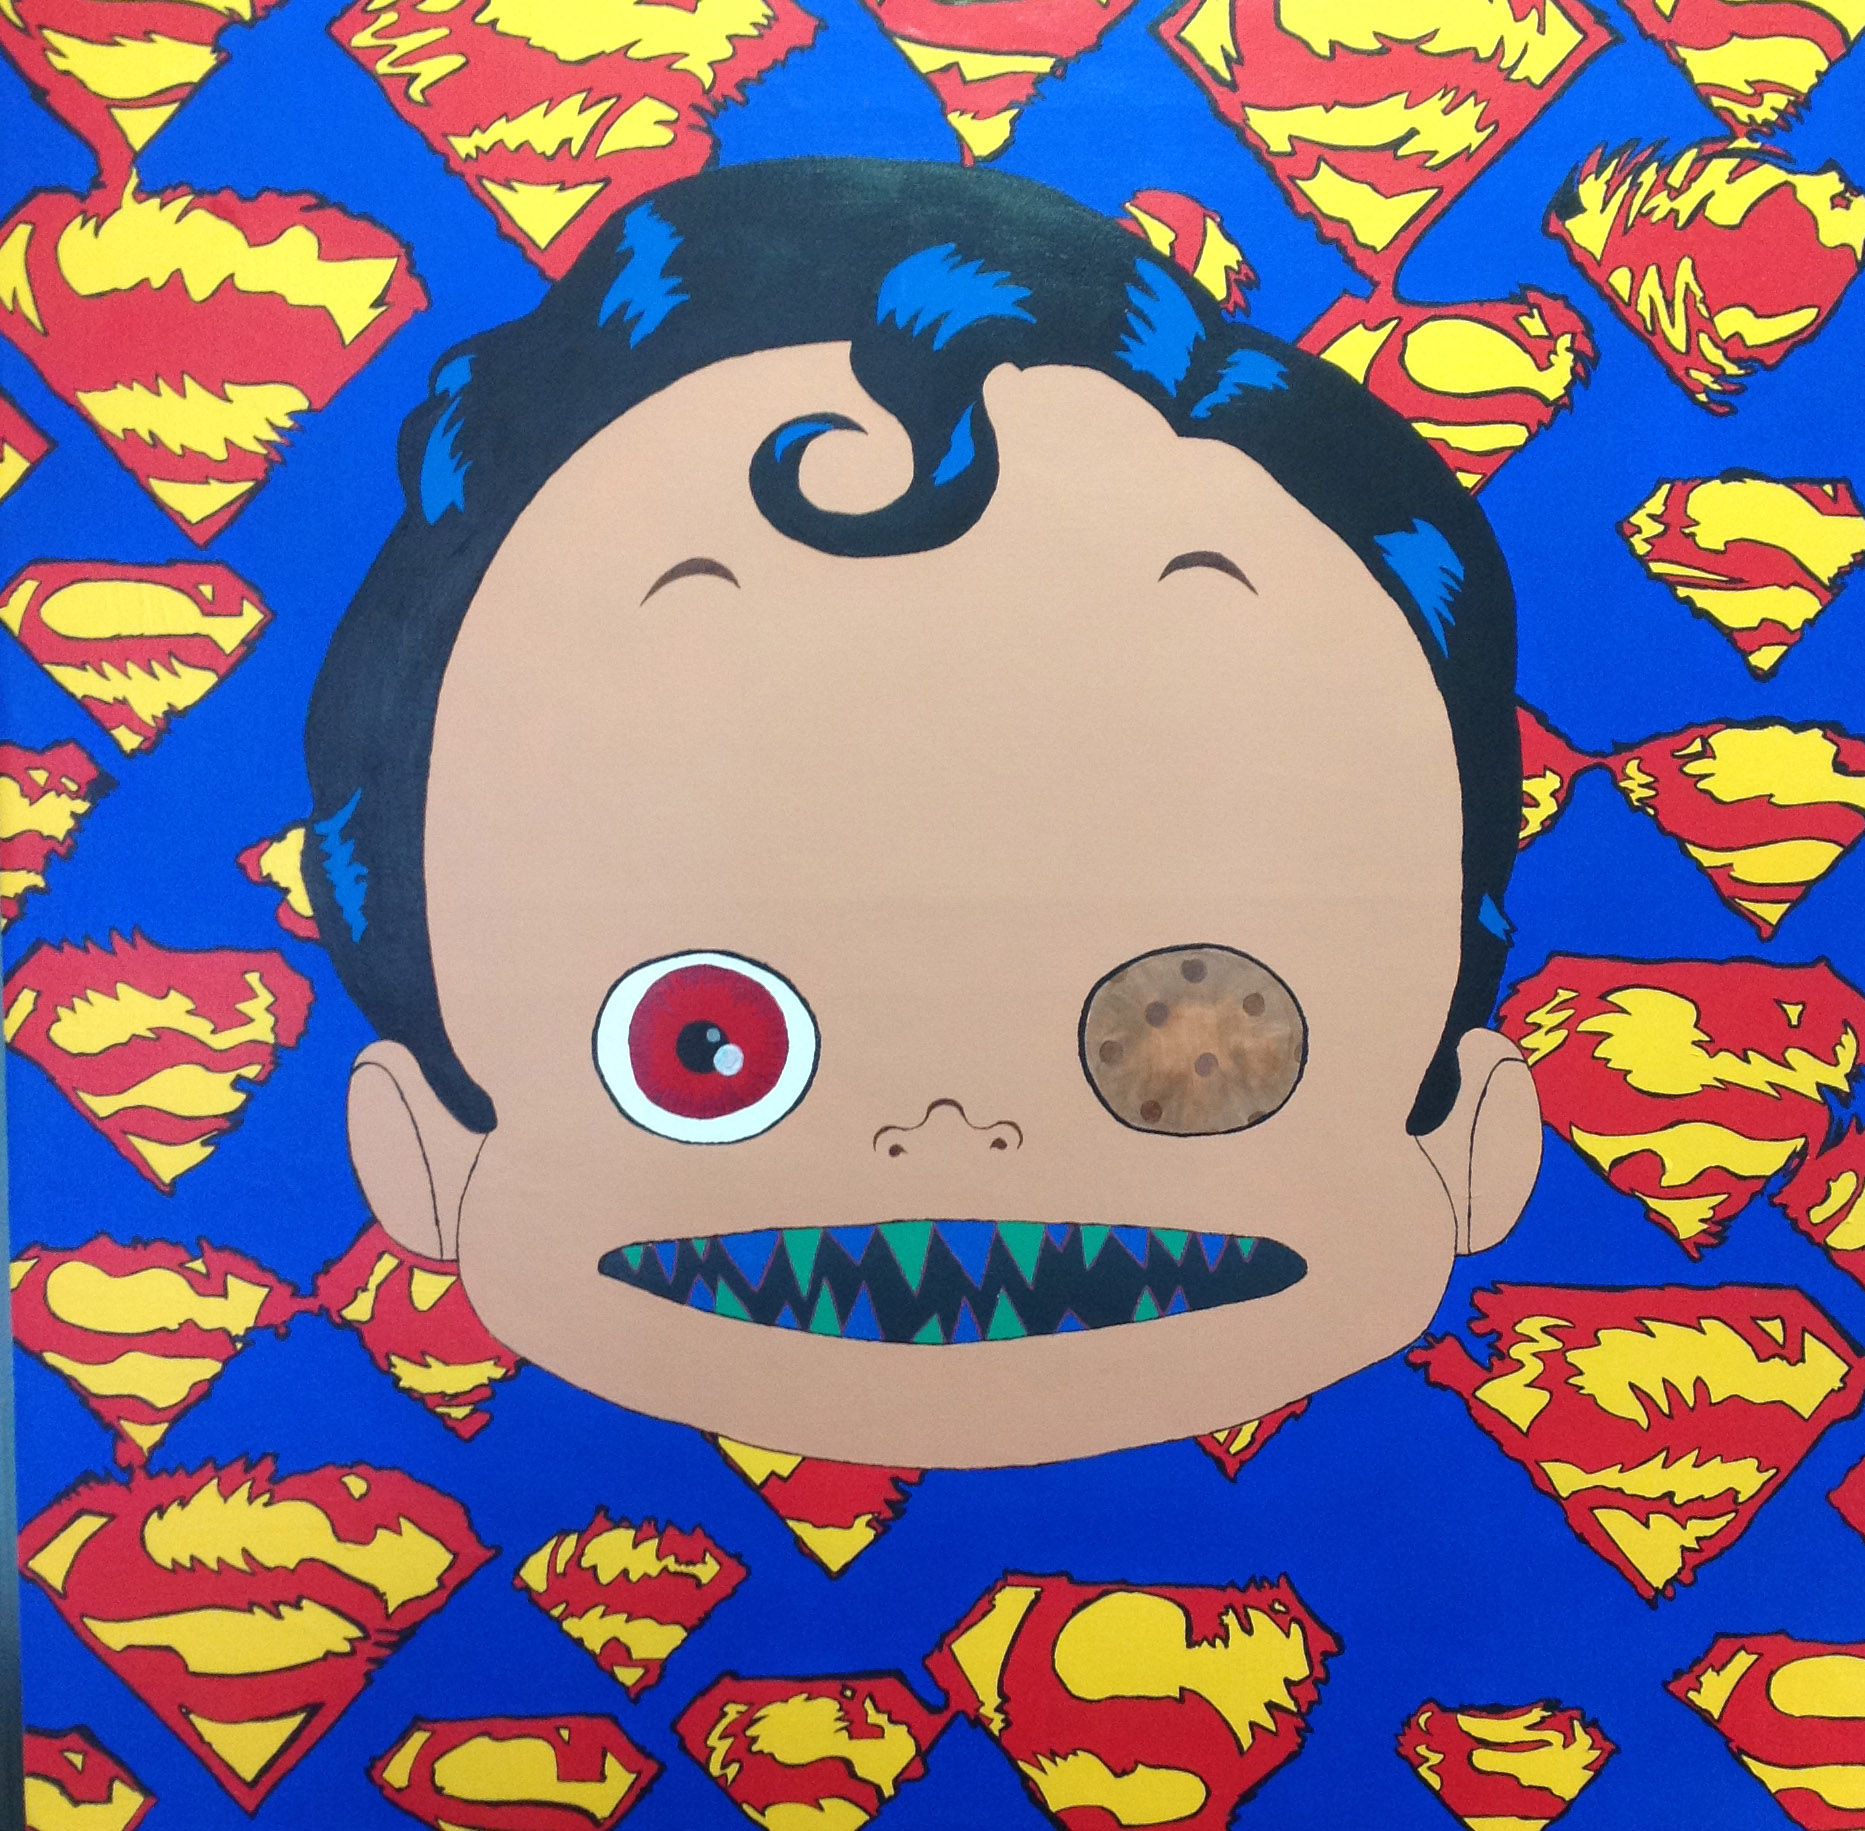 SupermanPainting.jpg